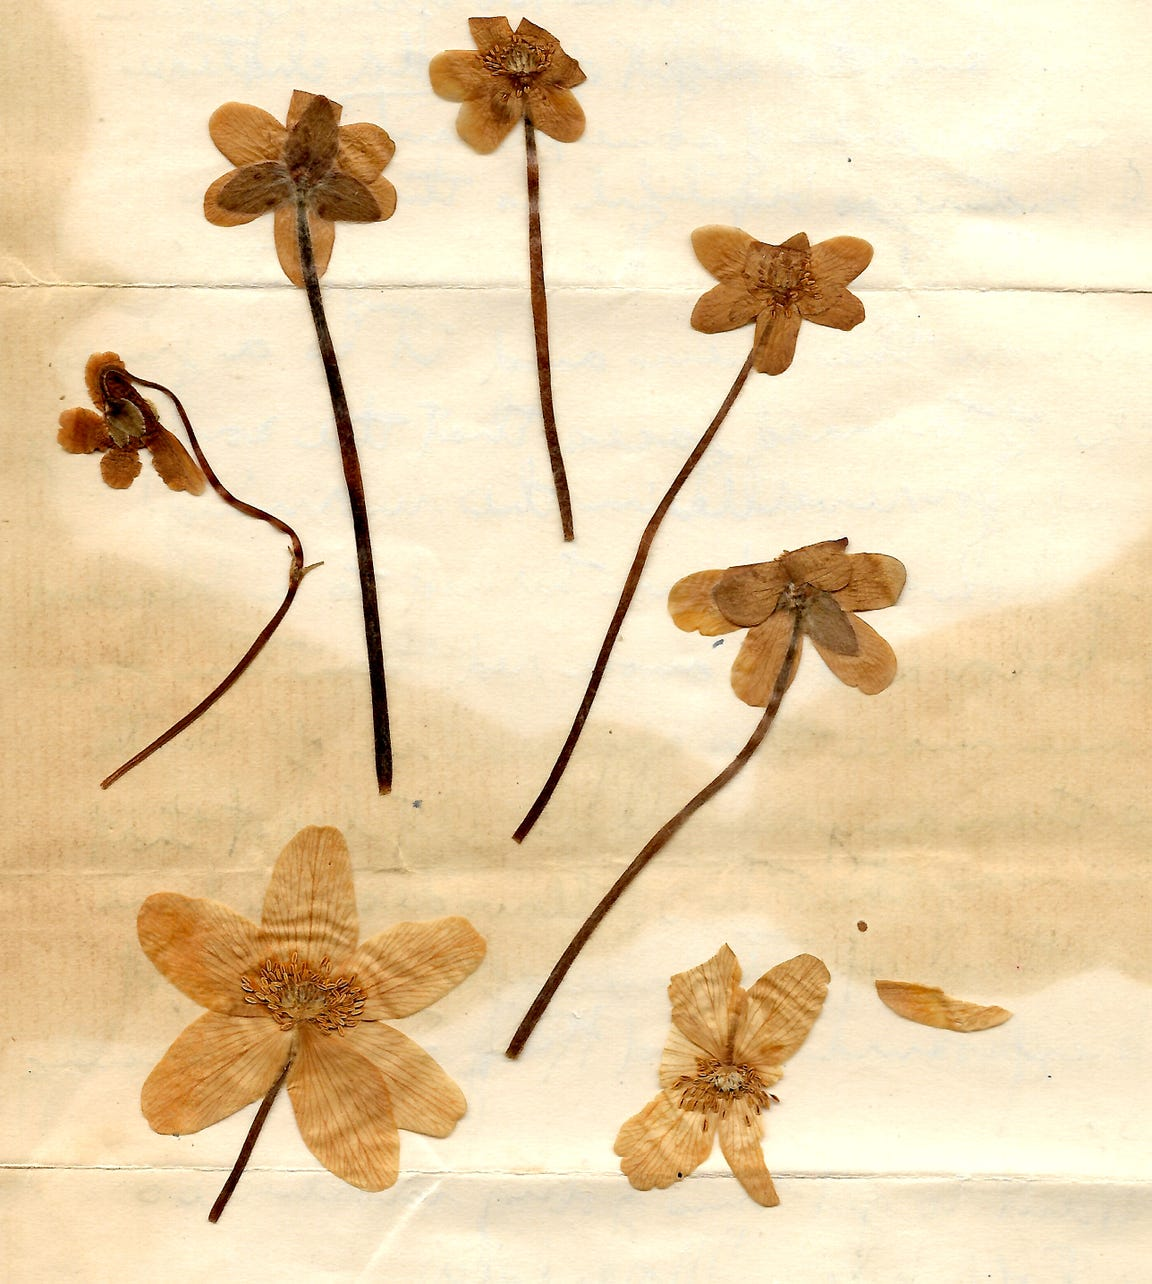 In a letter dated May 23, 1918, Harold Reilly included flowers that he had picked for his mother in No Man's Land from his most recent battle. Reilly left Marquette University in May 1917 to enlist in the U.S. Marines where he was assigned to the 81st Co., 6th Machine Gun Battalion. His unit arrived in France on Dec. 28, 1917.